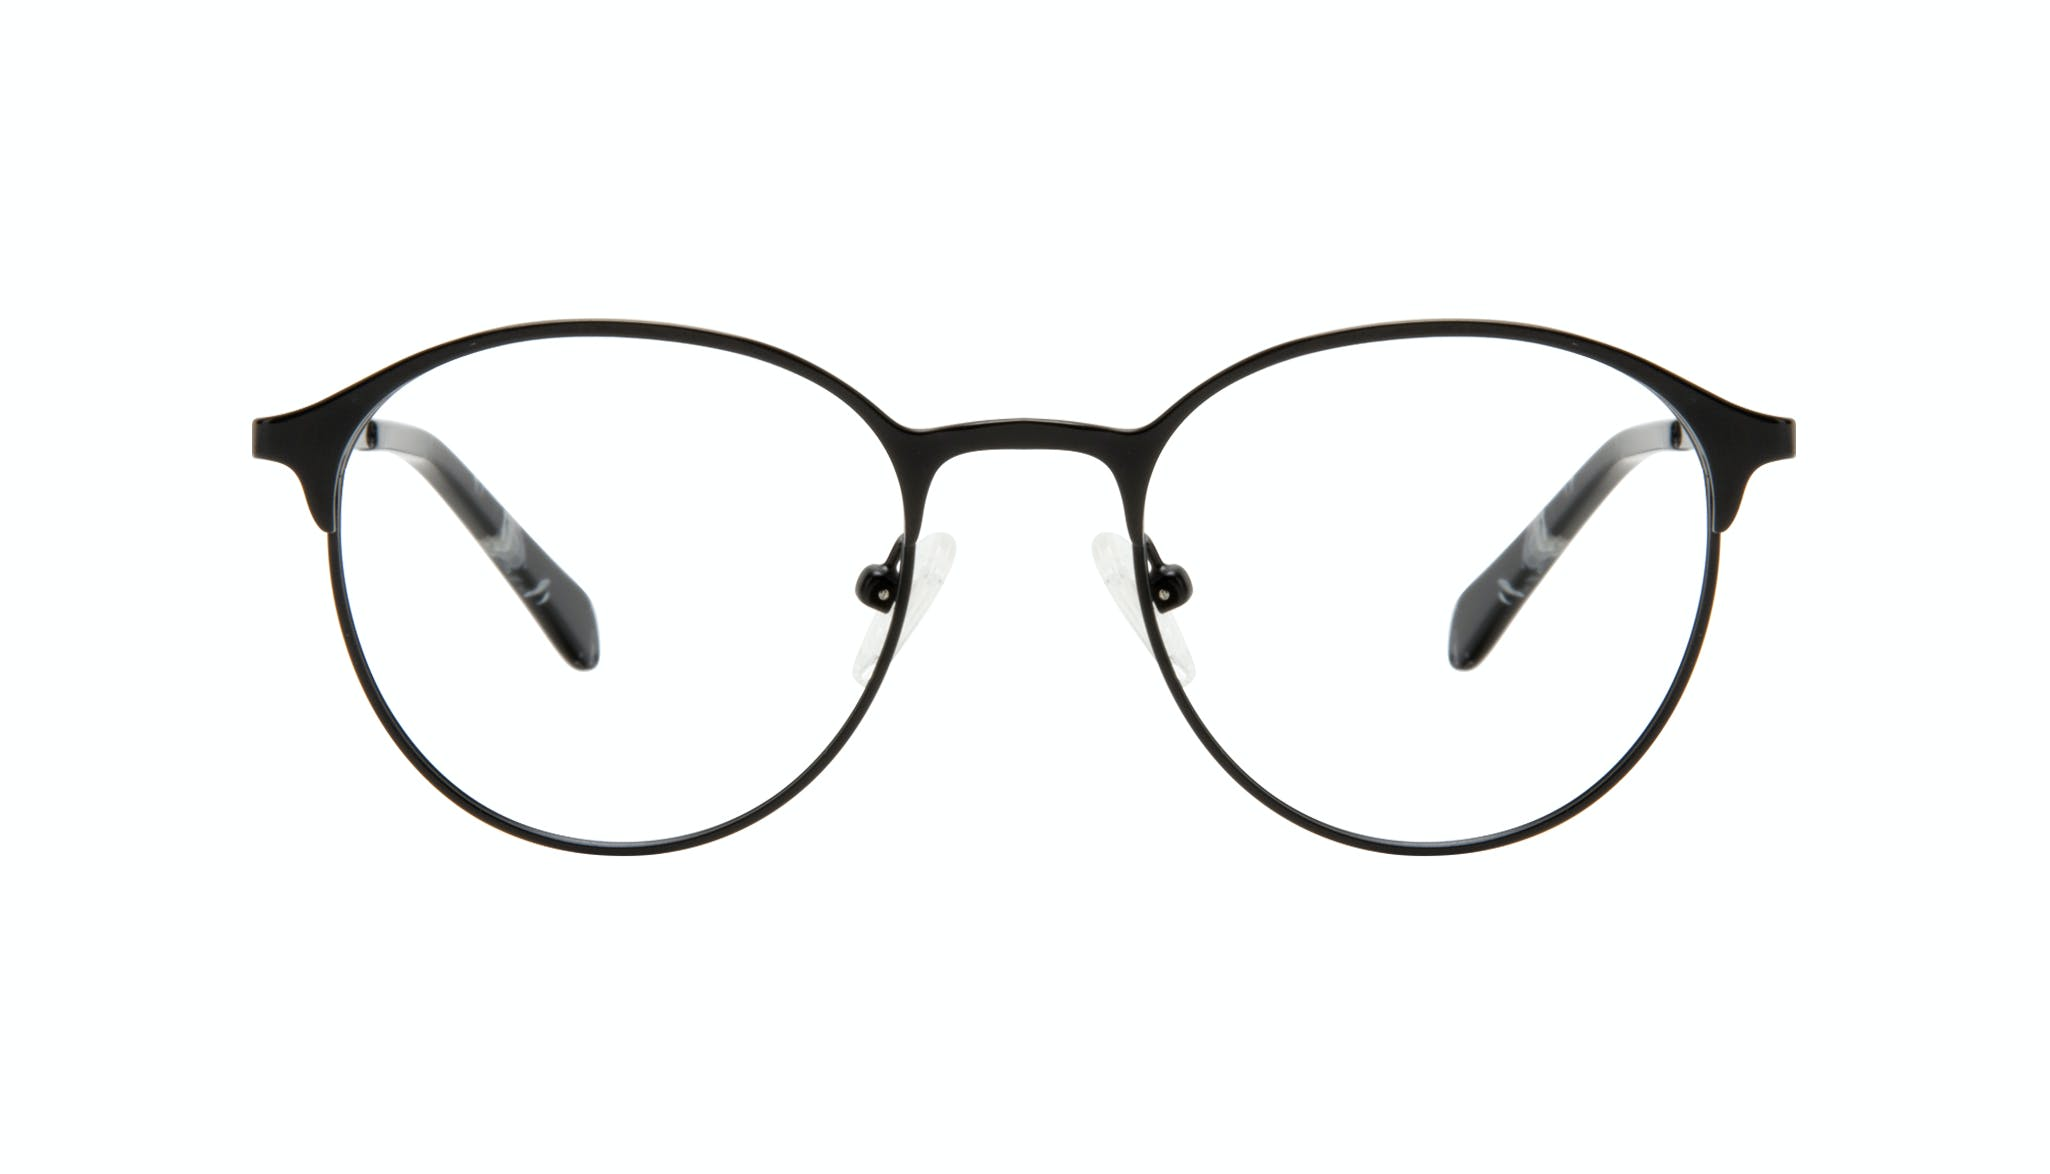 Affordable Fashion Glasses Round Eyeglasses Women Bay II Black Matte Front